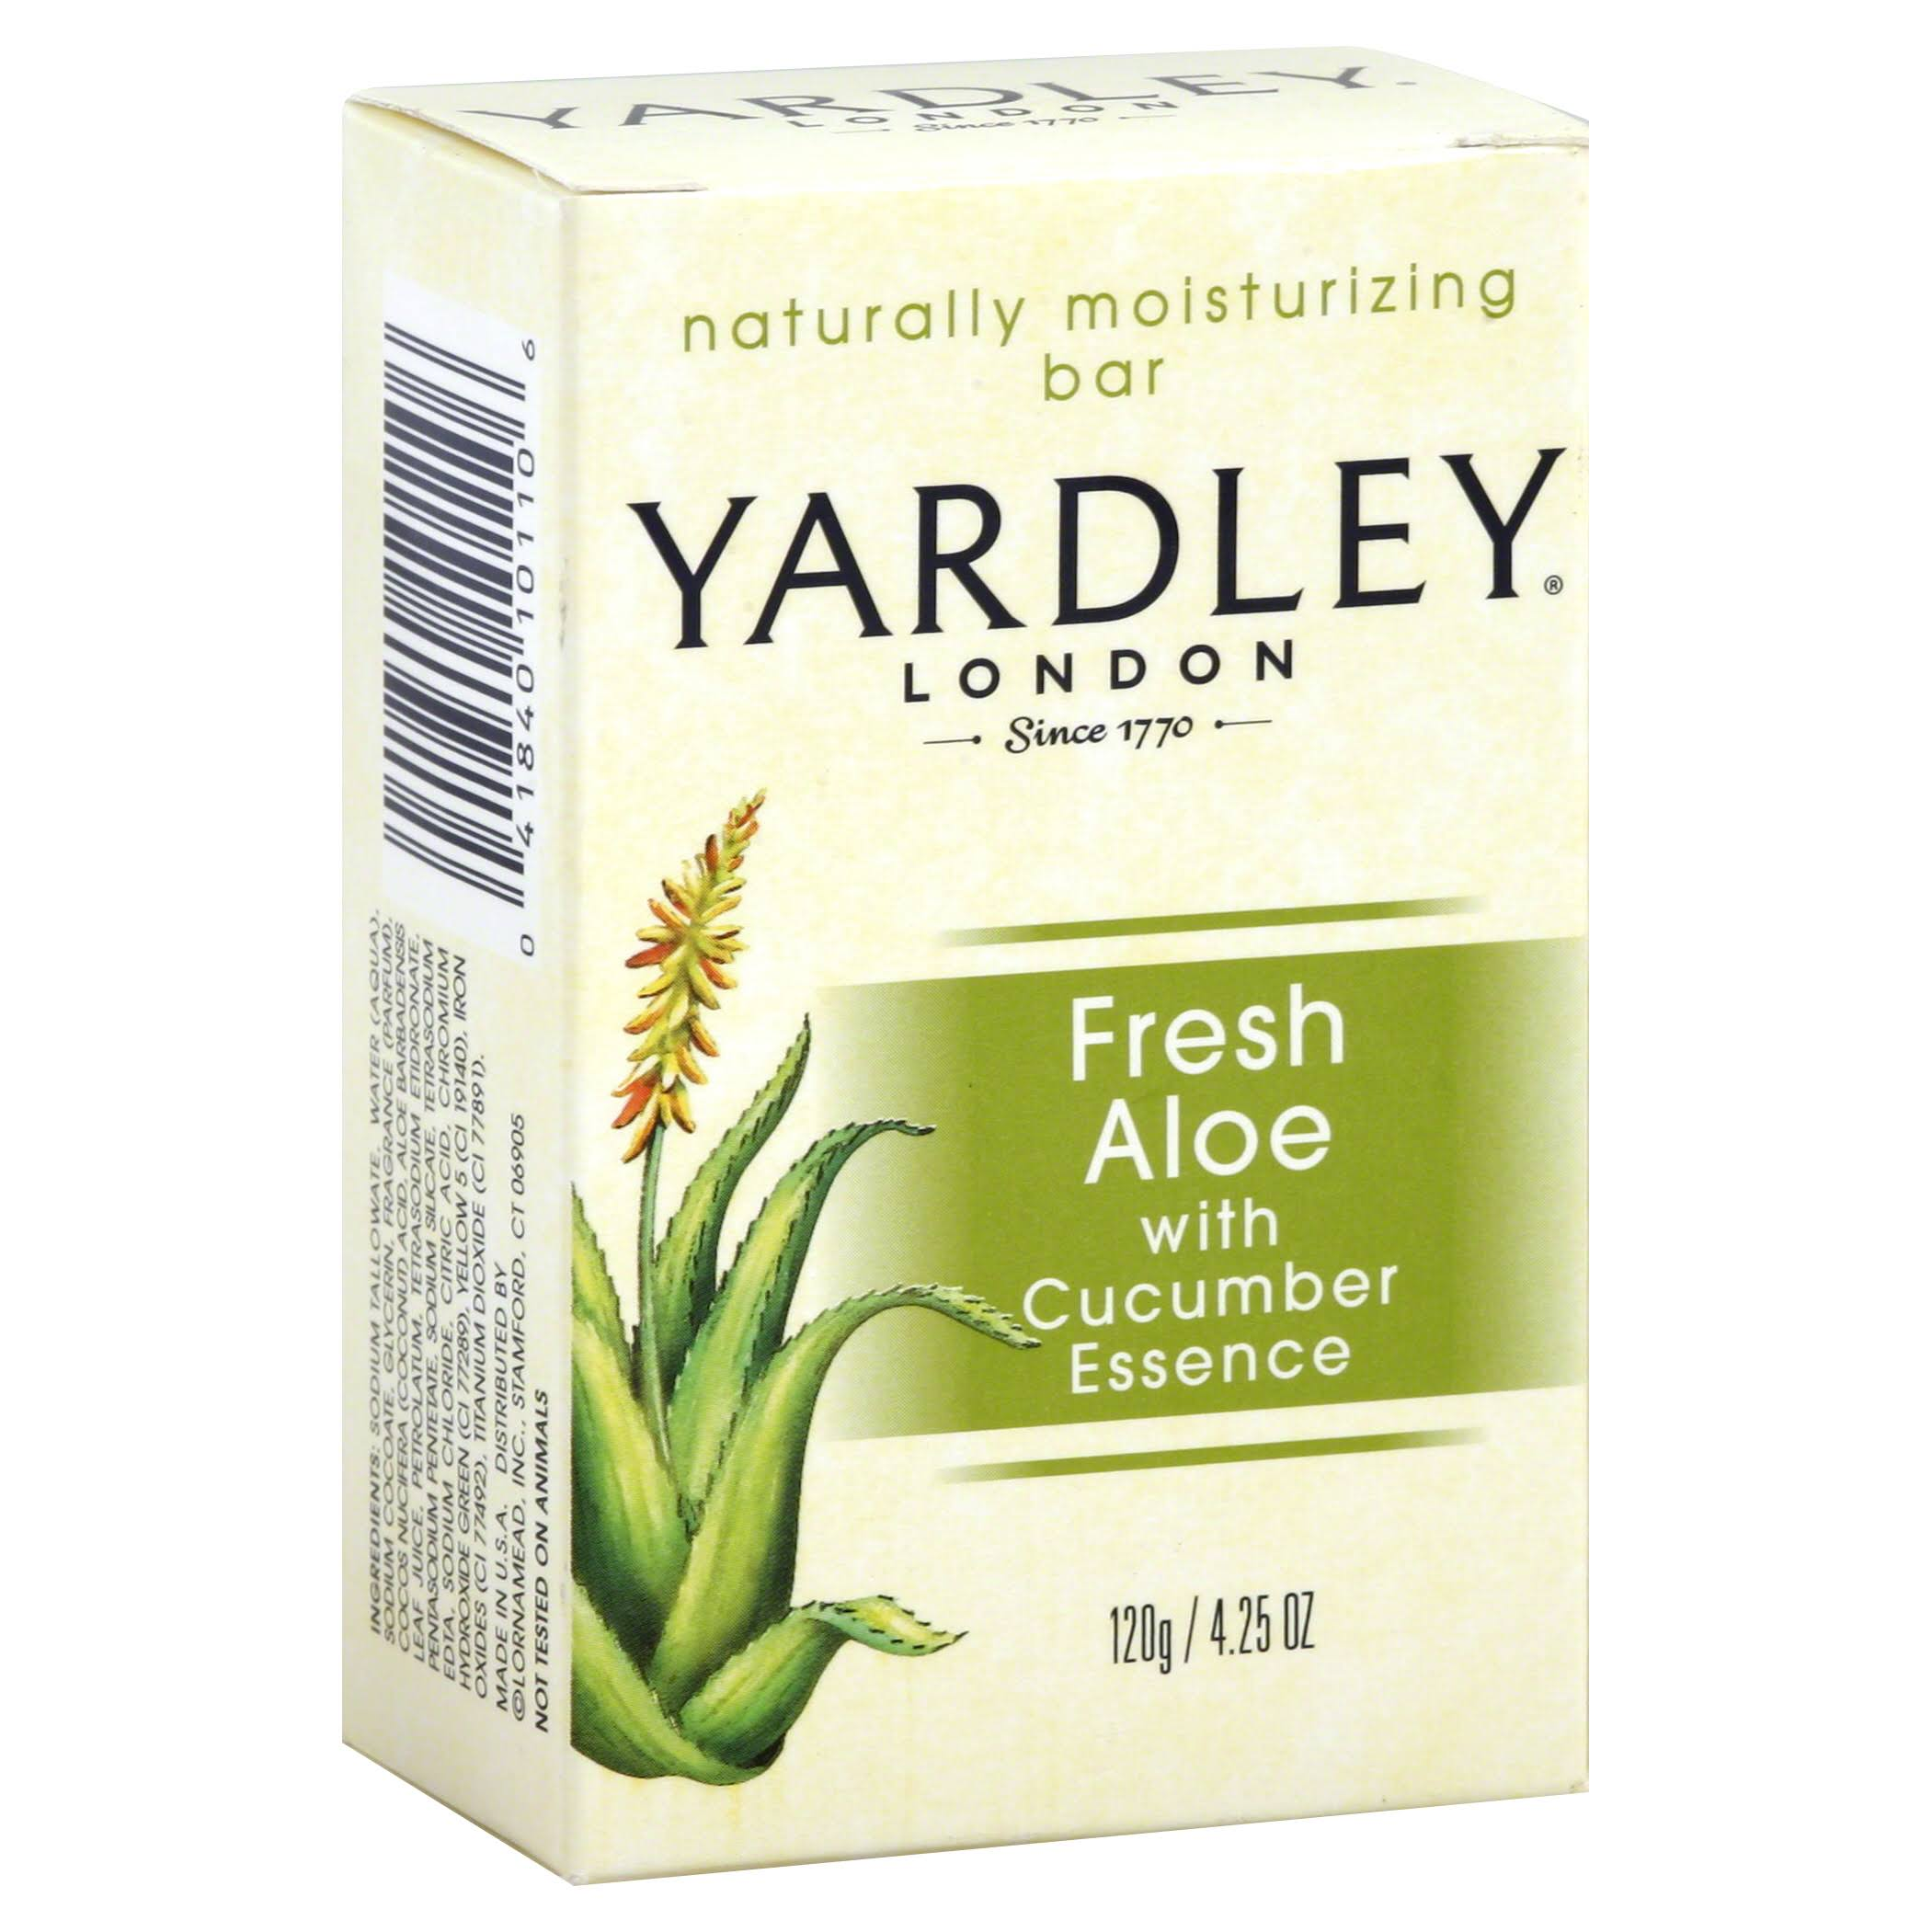 Yardley Naturally Moisturising Bar - Aloe & Avocado, 120g